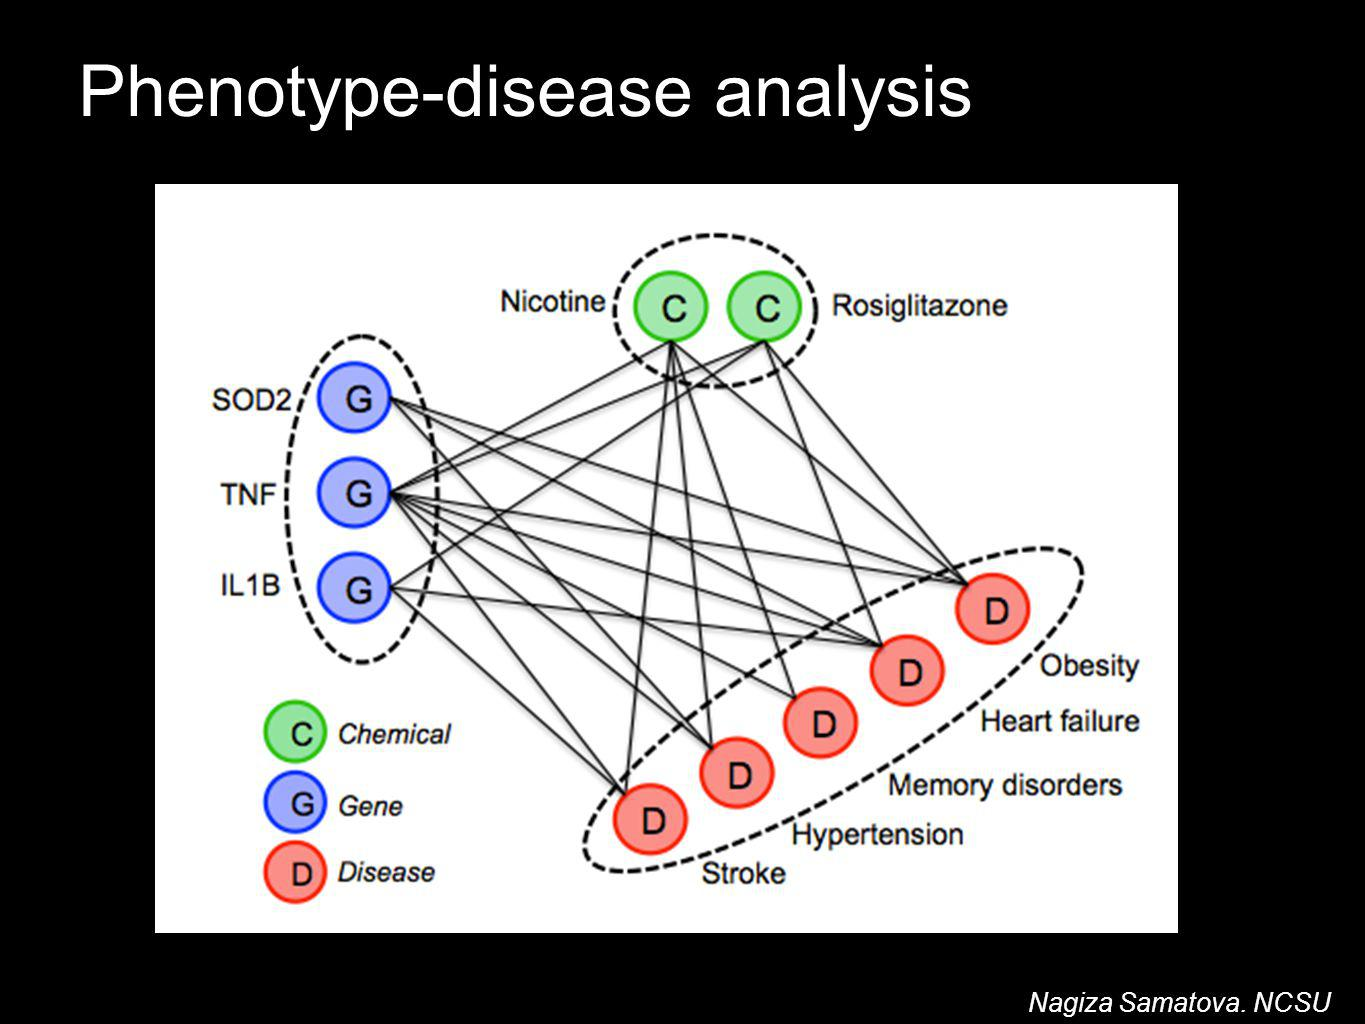 Nagiza Samatova. NCSU Phenotype-disease analysis